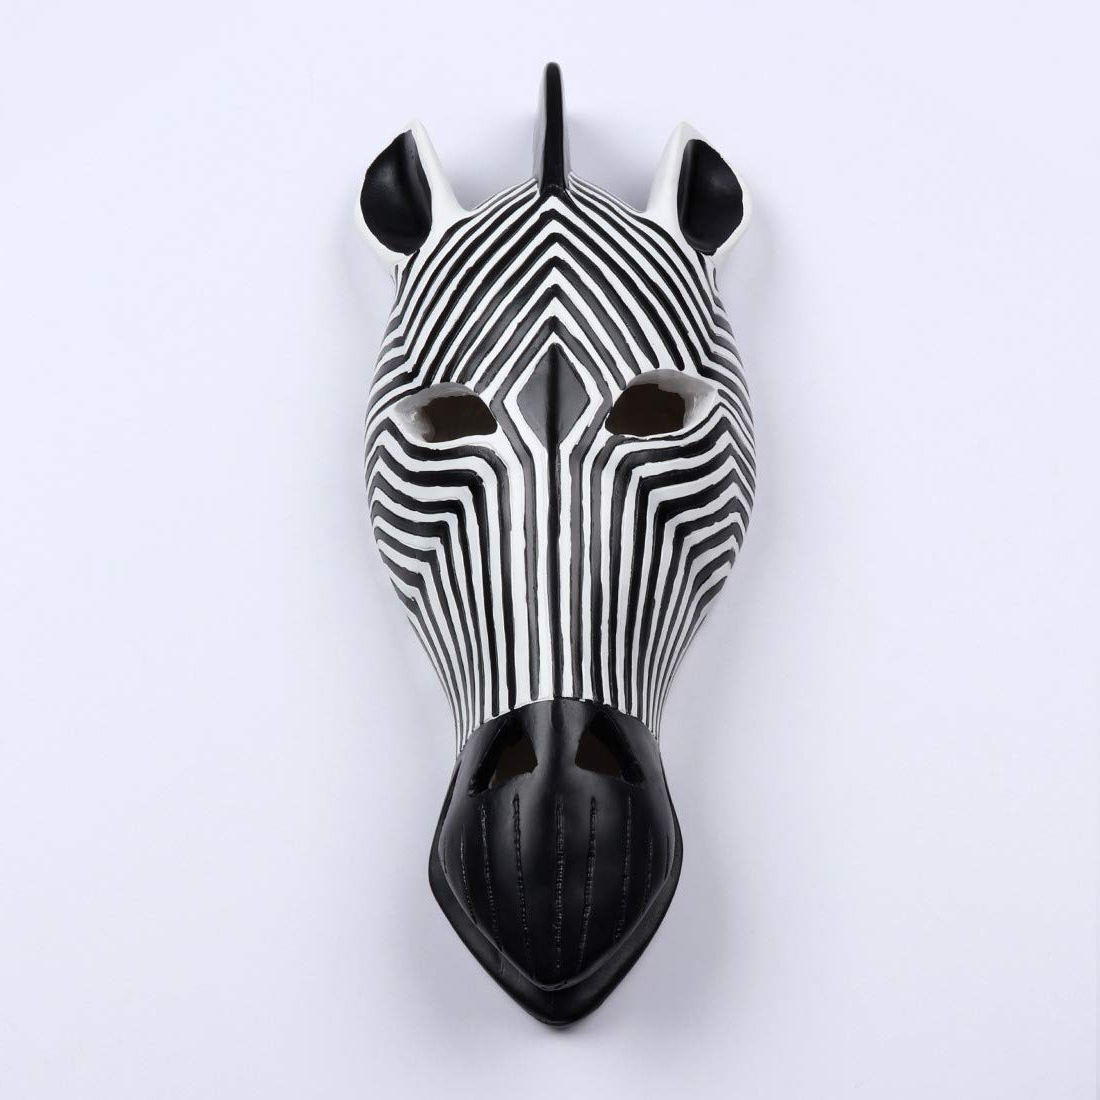 Most Up To Date Animal Mask Of The Savannah Zebra Wall Décor Throughout Comlzd African Tribal Zebra Head Mask Savannah Wall Plaque (View 6 of 20)